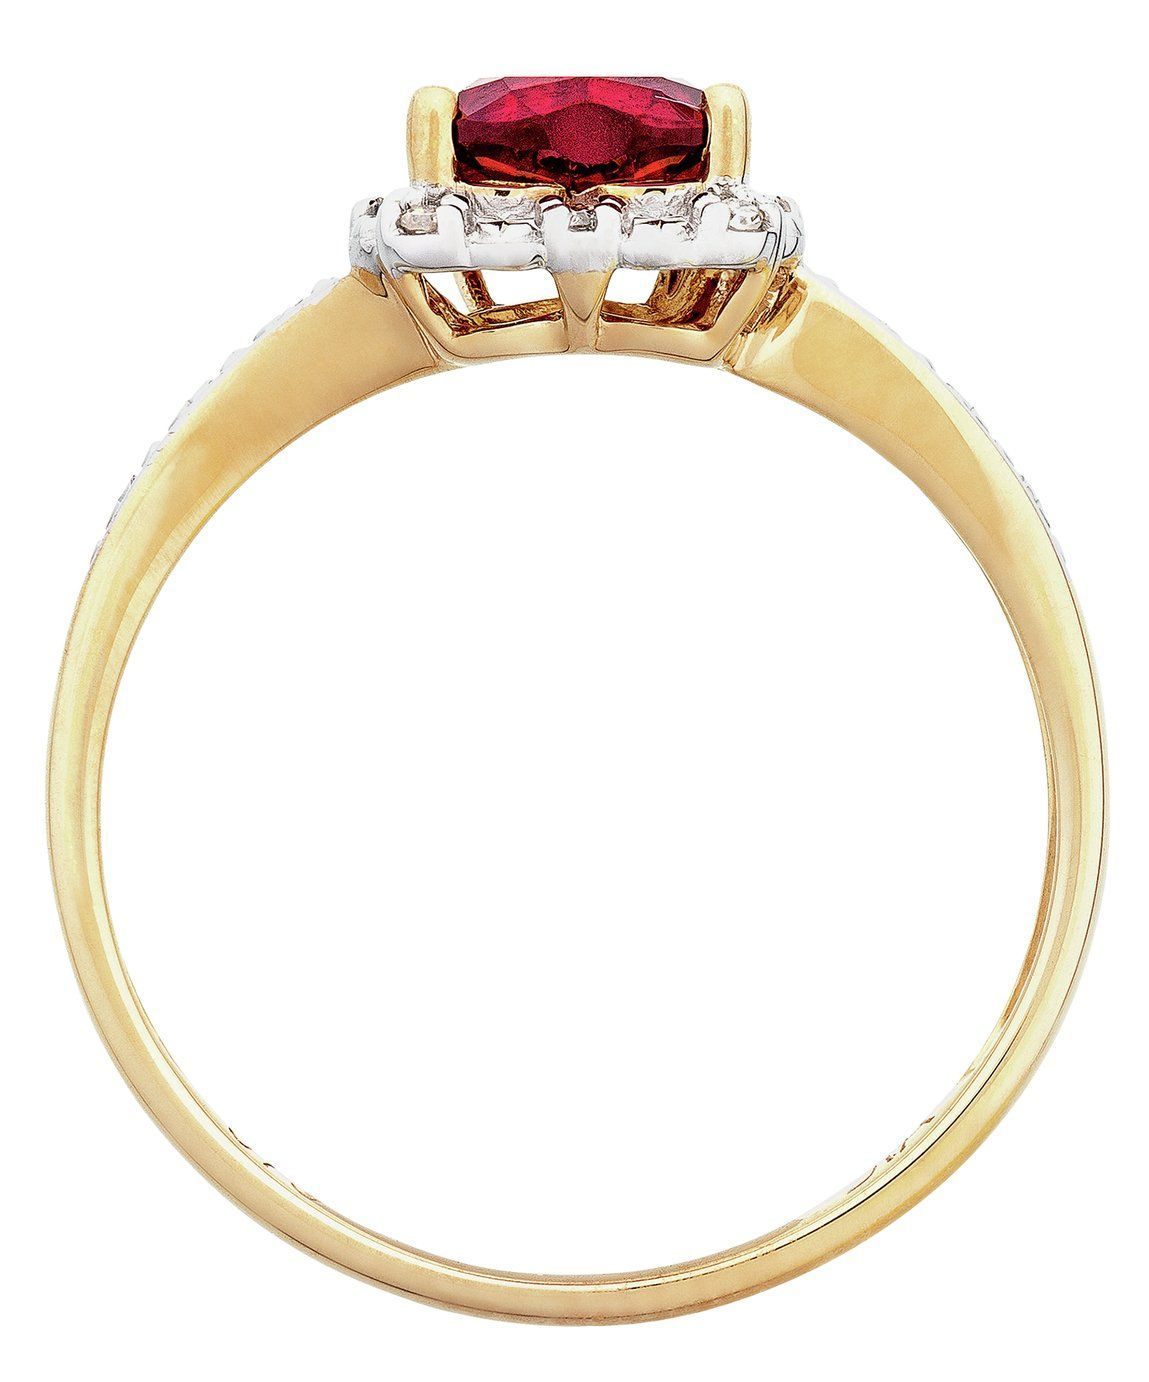 Revere 9ct Gold 2pt tw Diamond & Created Ruby Heart Ring - I#2pt #9ct #created #diamond #gold #heart #revere #ring #ruby